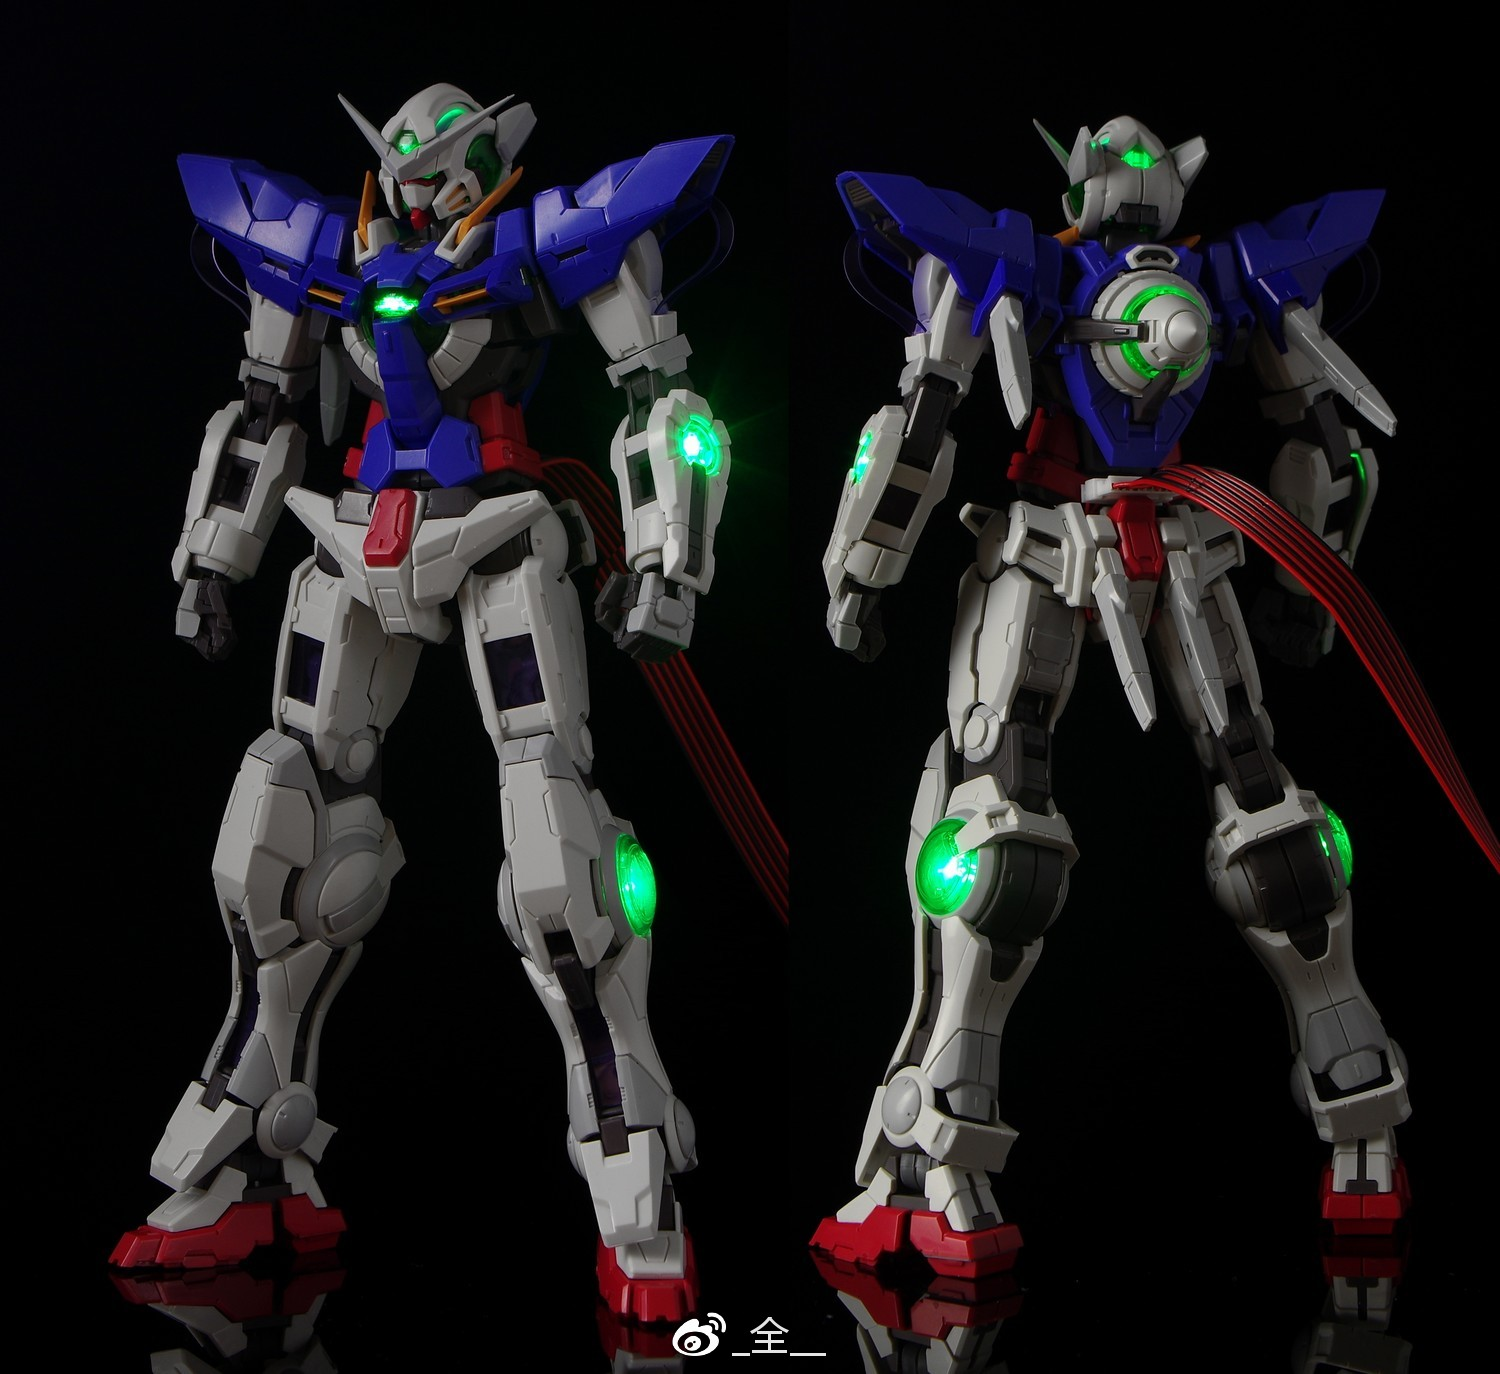 S269_mg_exia_led_hobby_star_inask_052.jpg